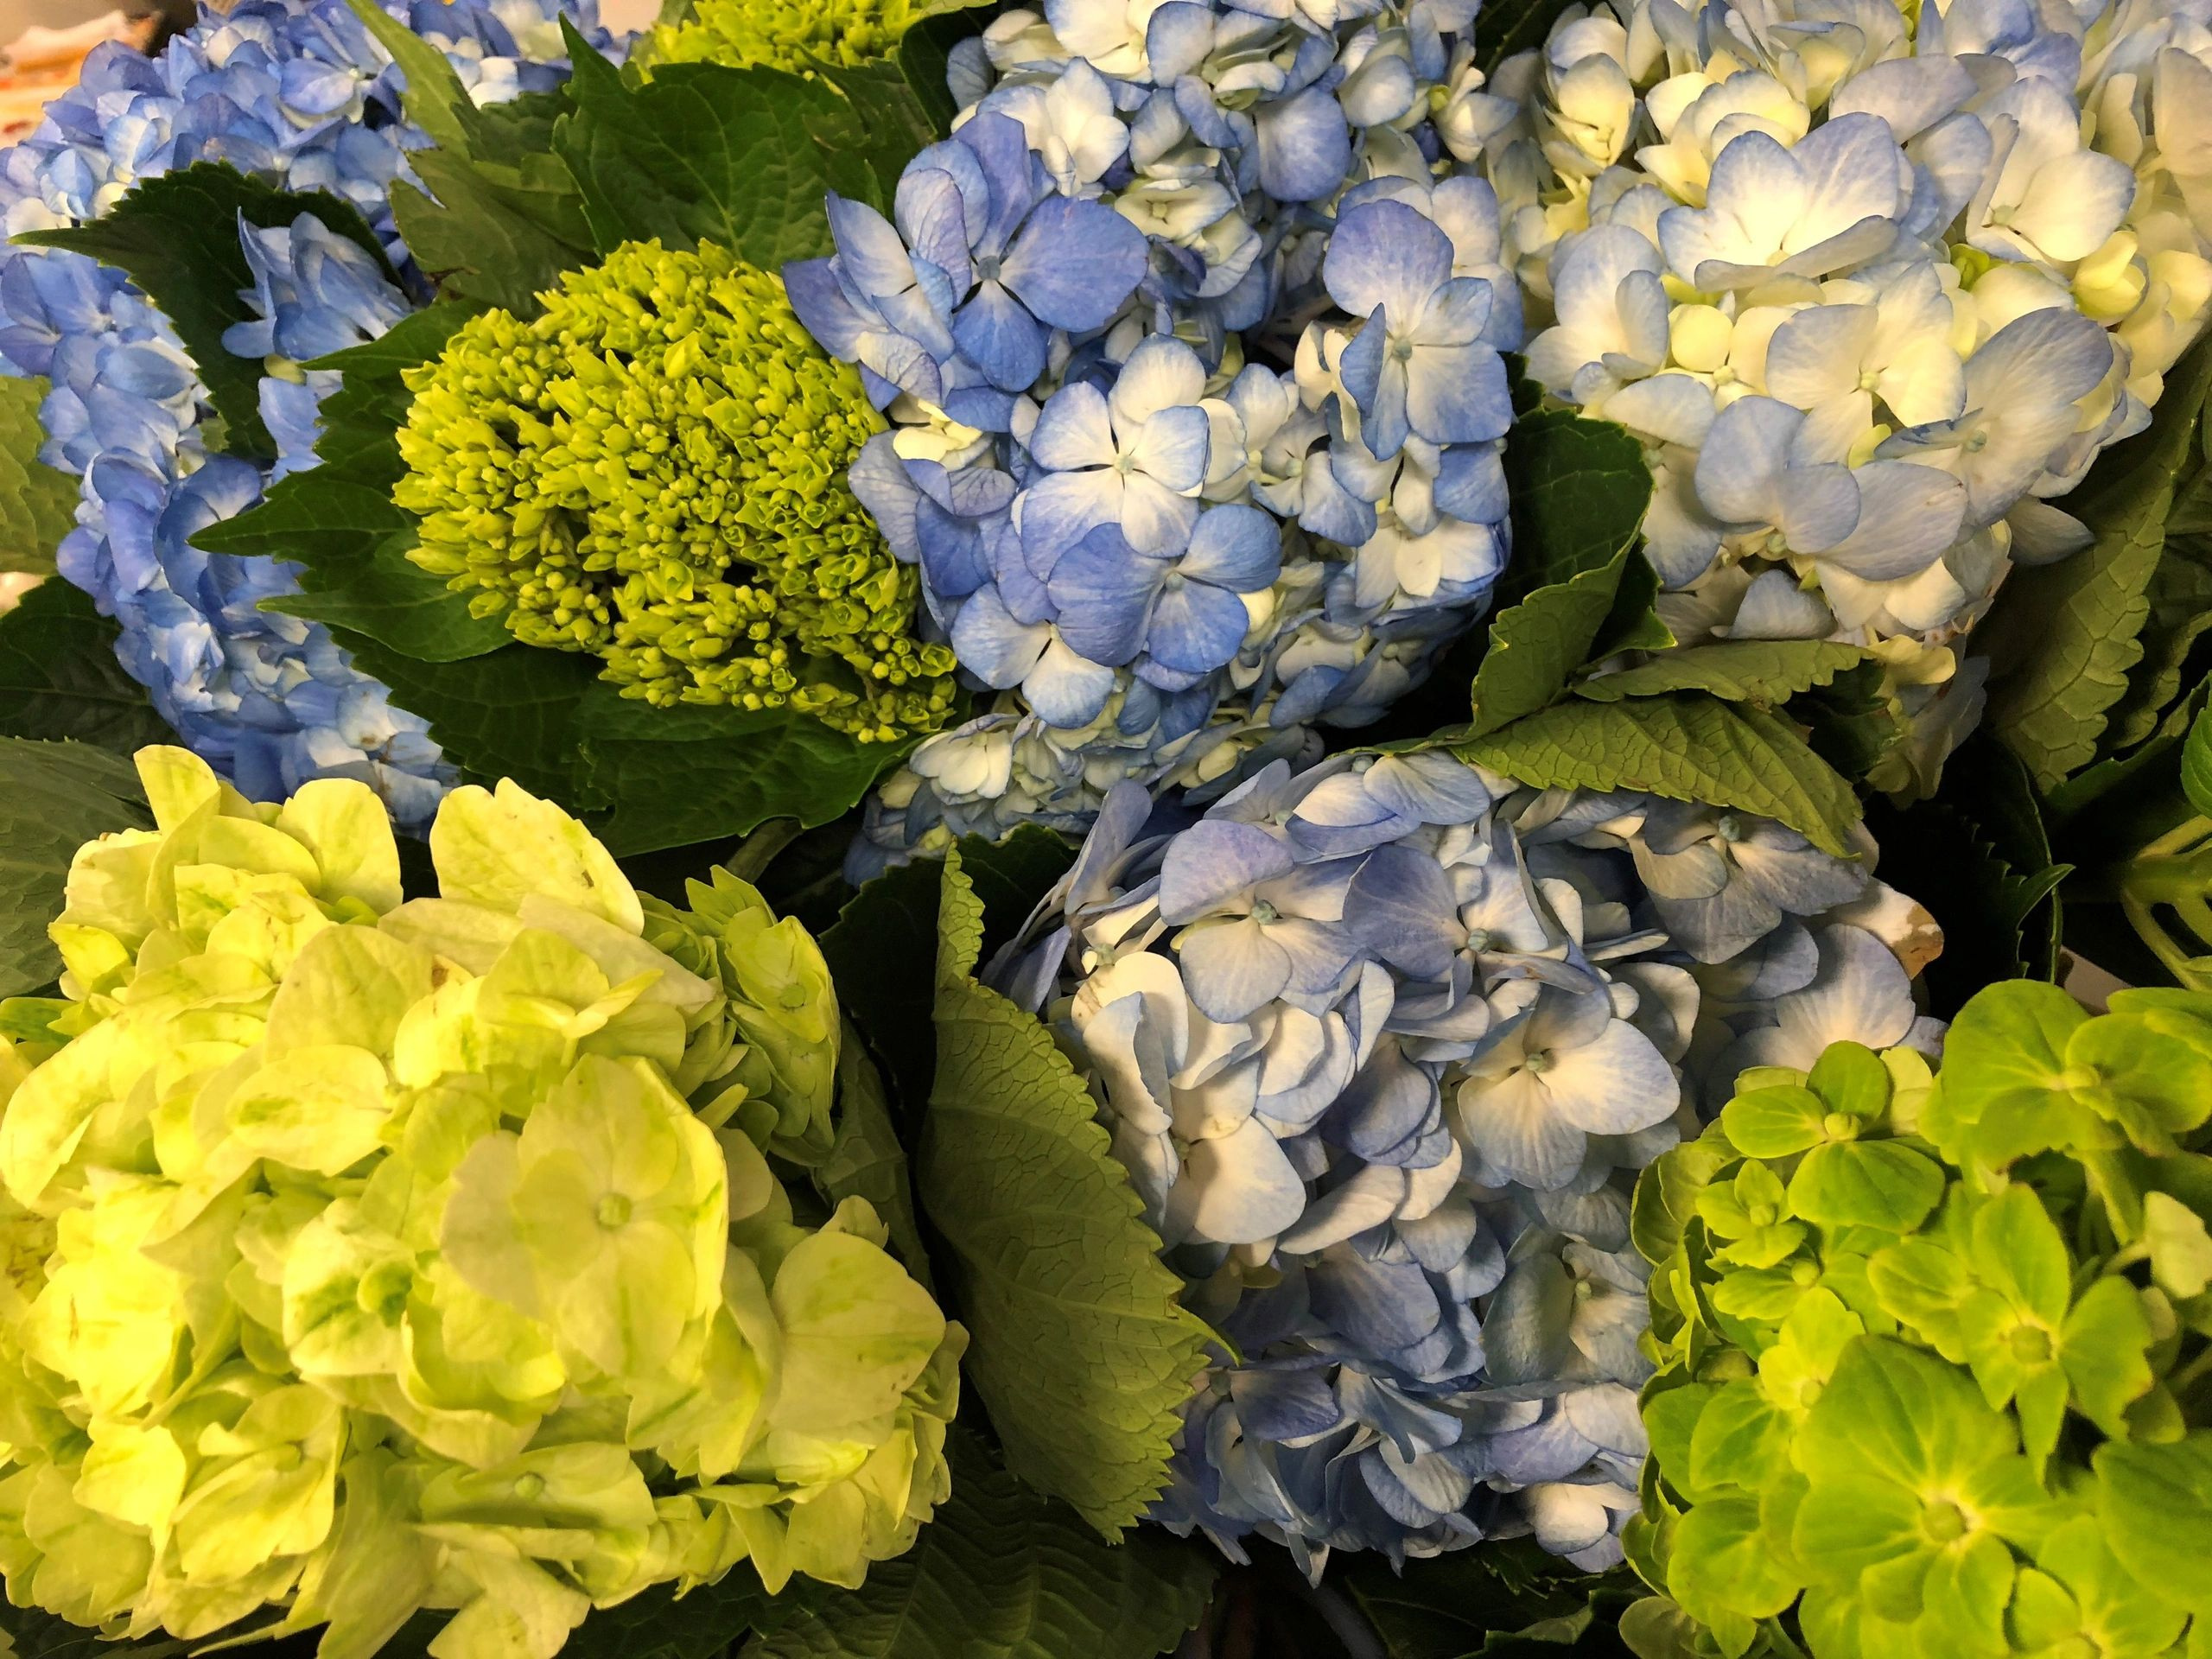 Established Wholesale/Retail Florist